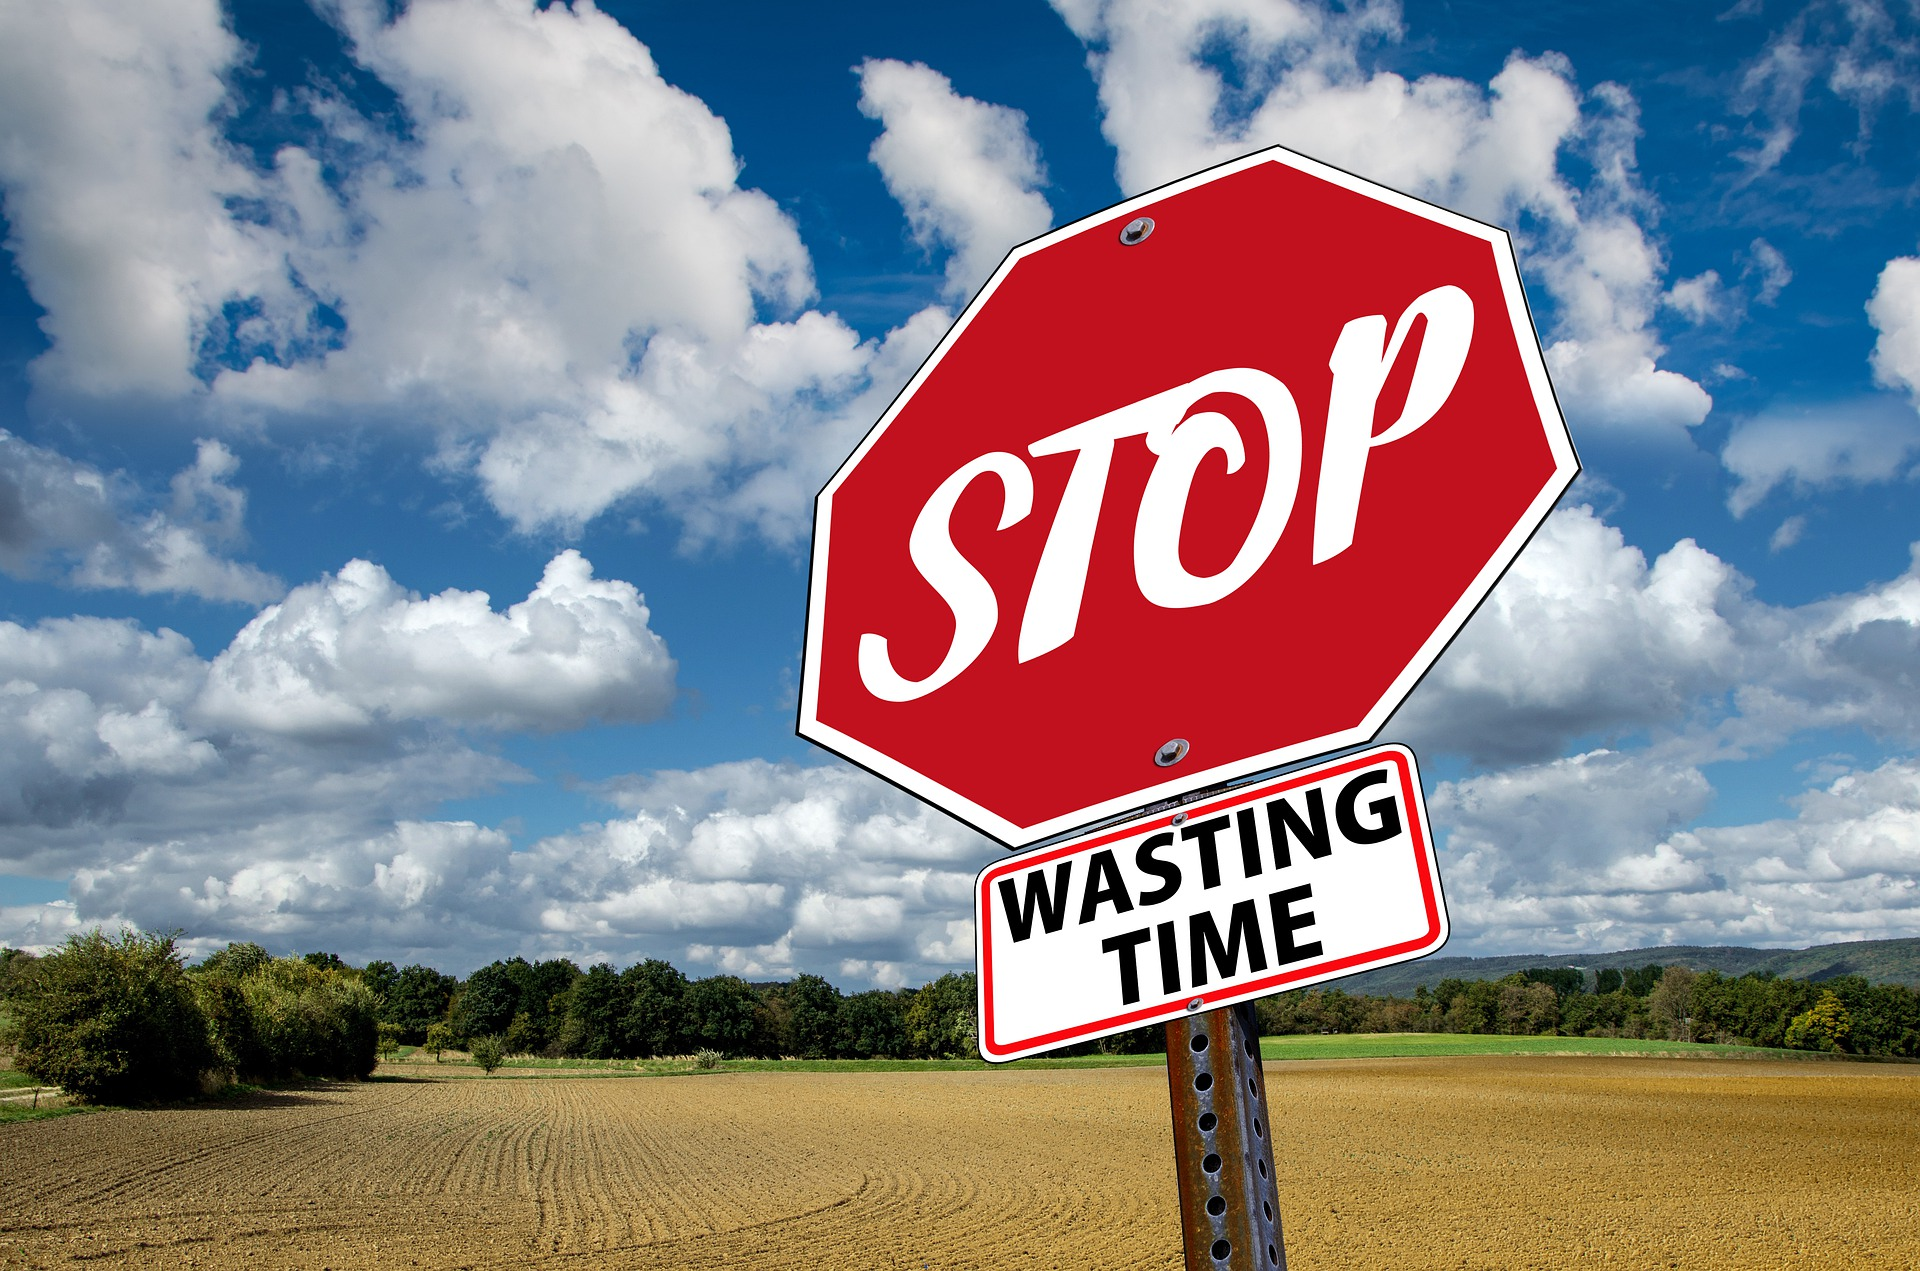 Time Wasted: Your Social Media Strategy